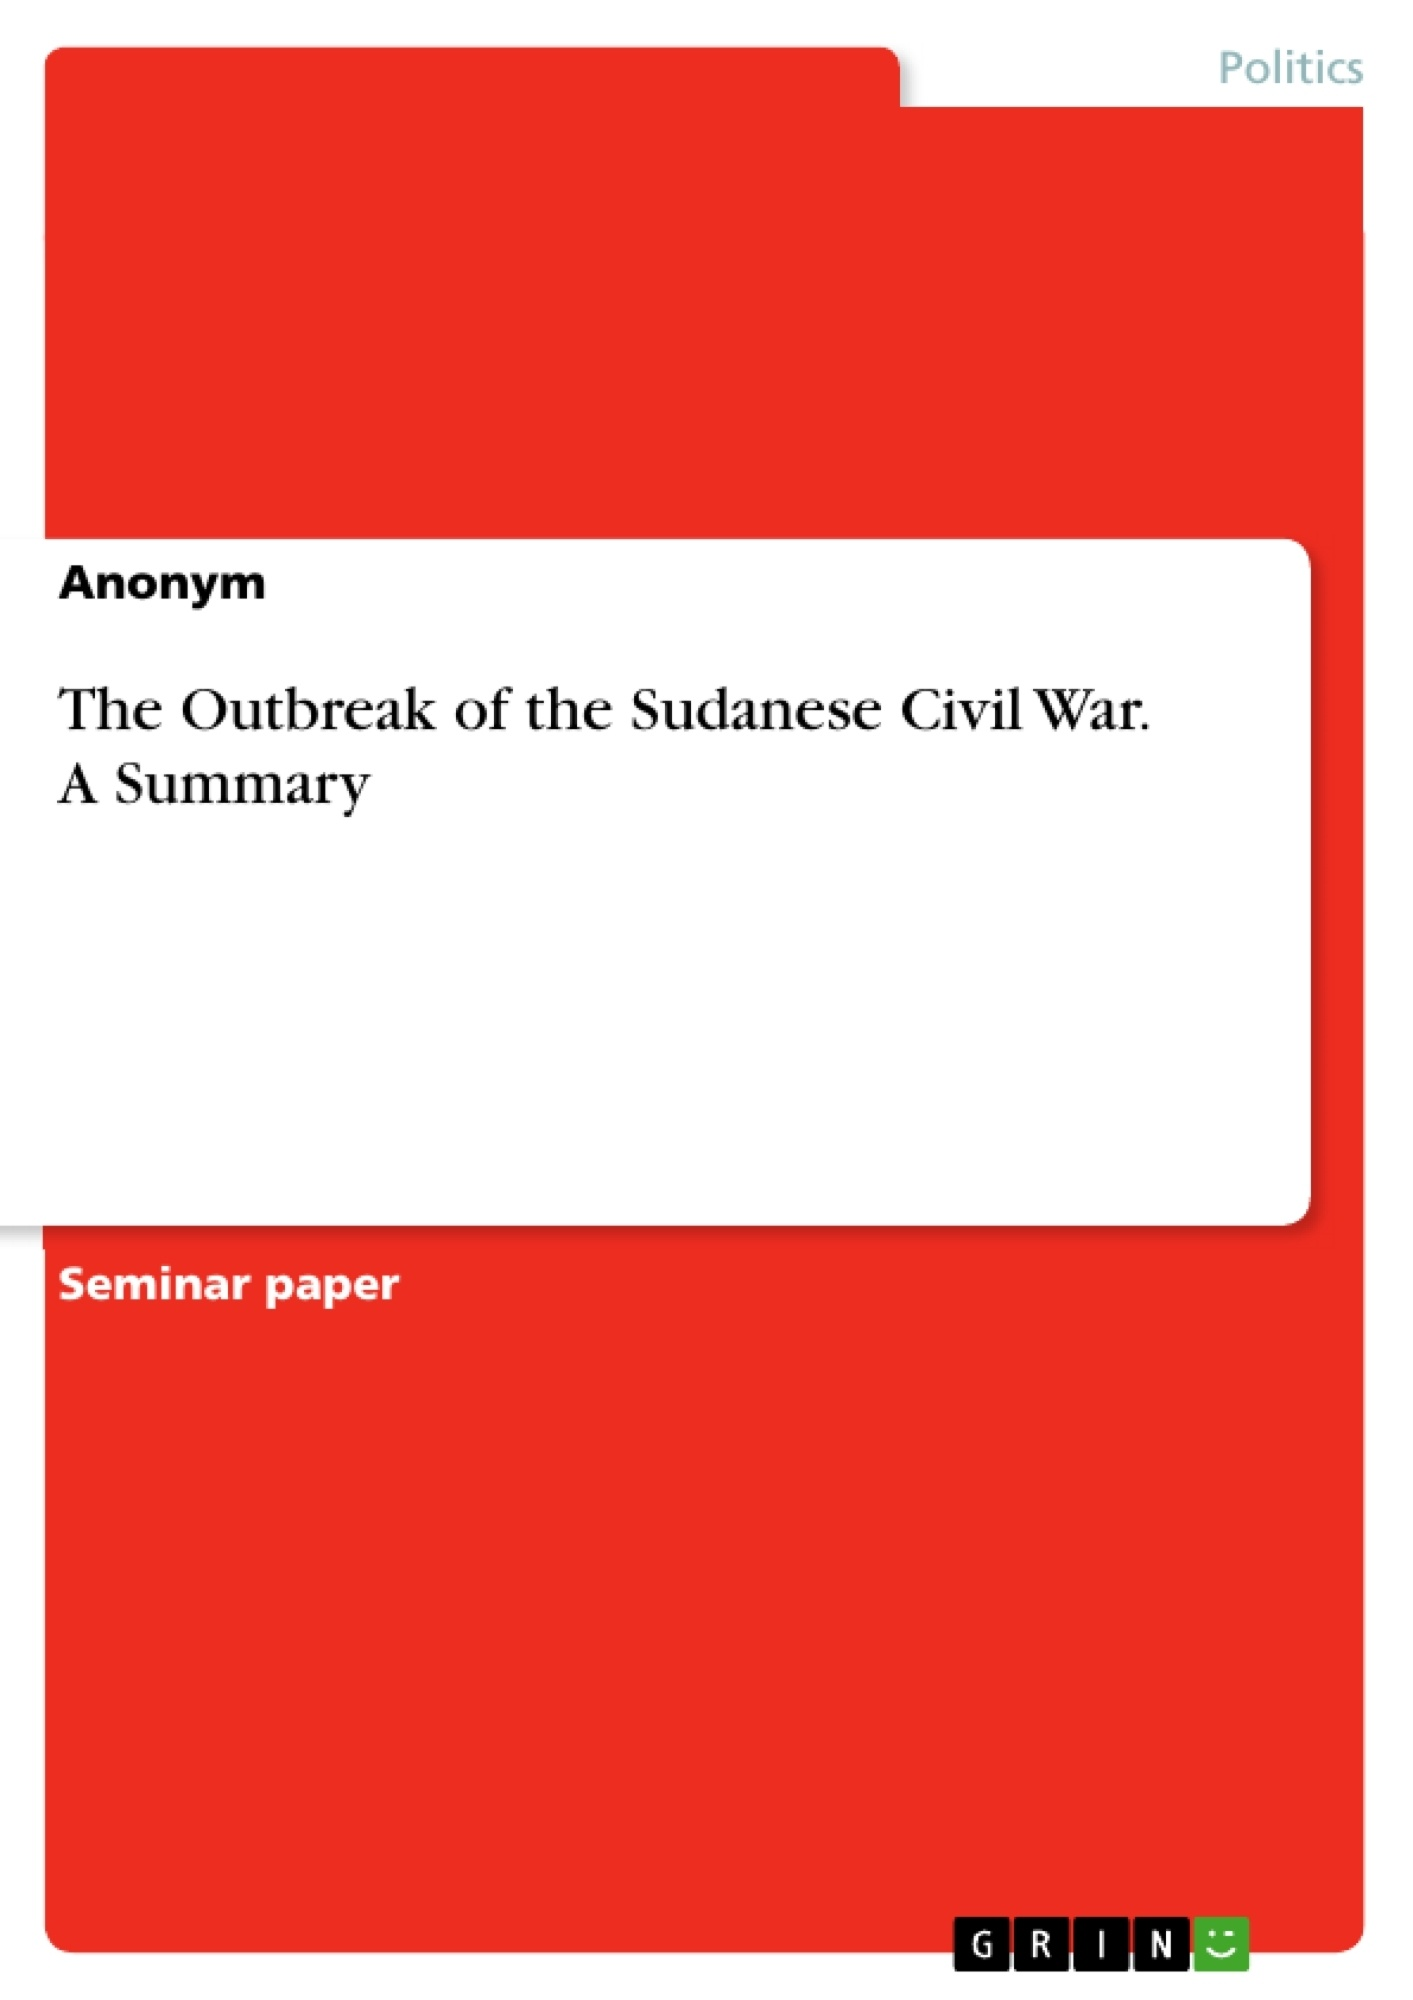 Title: The Outbreak of the Sudanese Civil War. A Summary